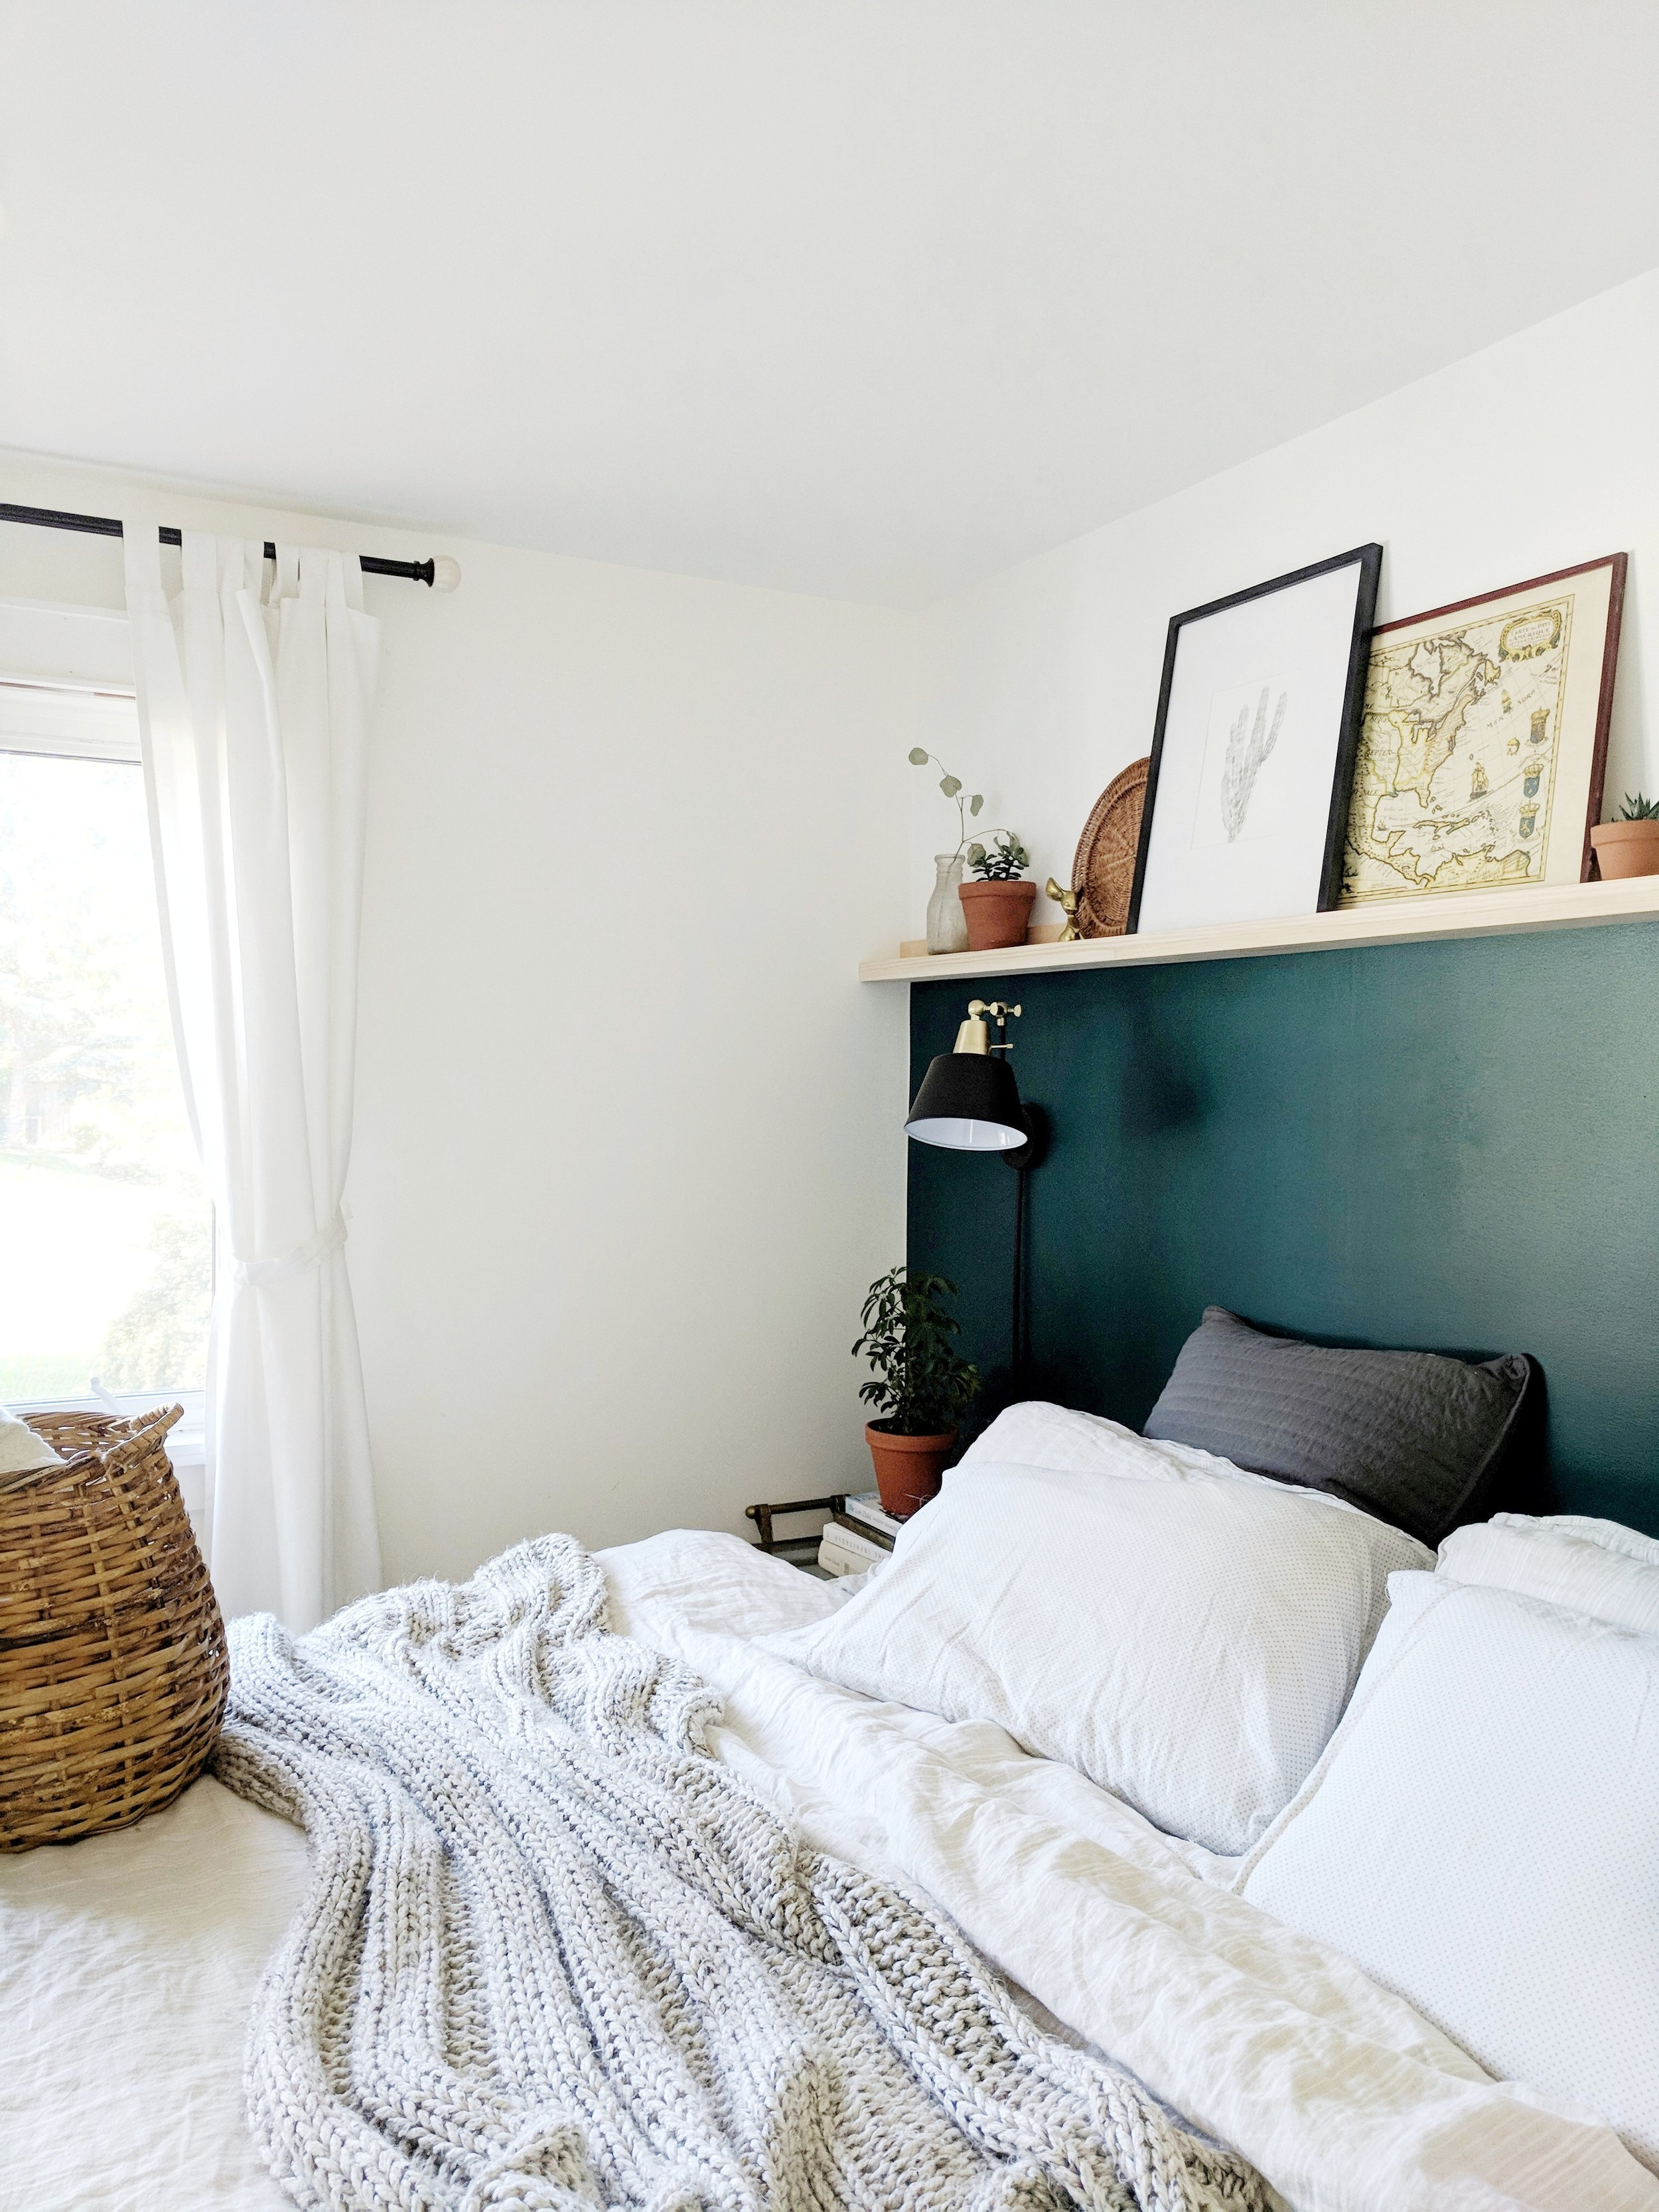 Master Bedroom Wall To Wall Picture Ledge K I R S T E N D I A N E